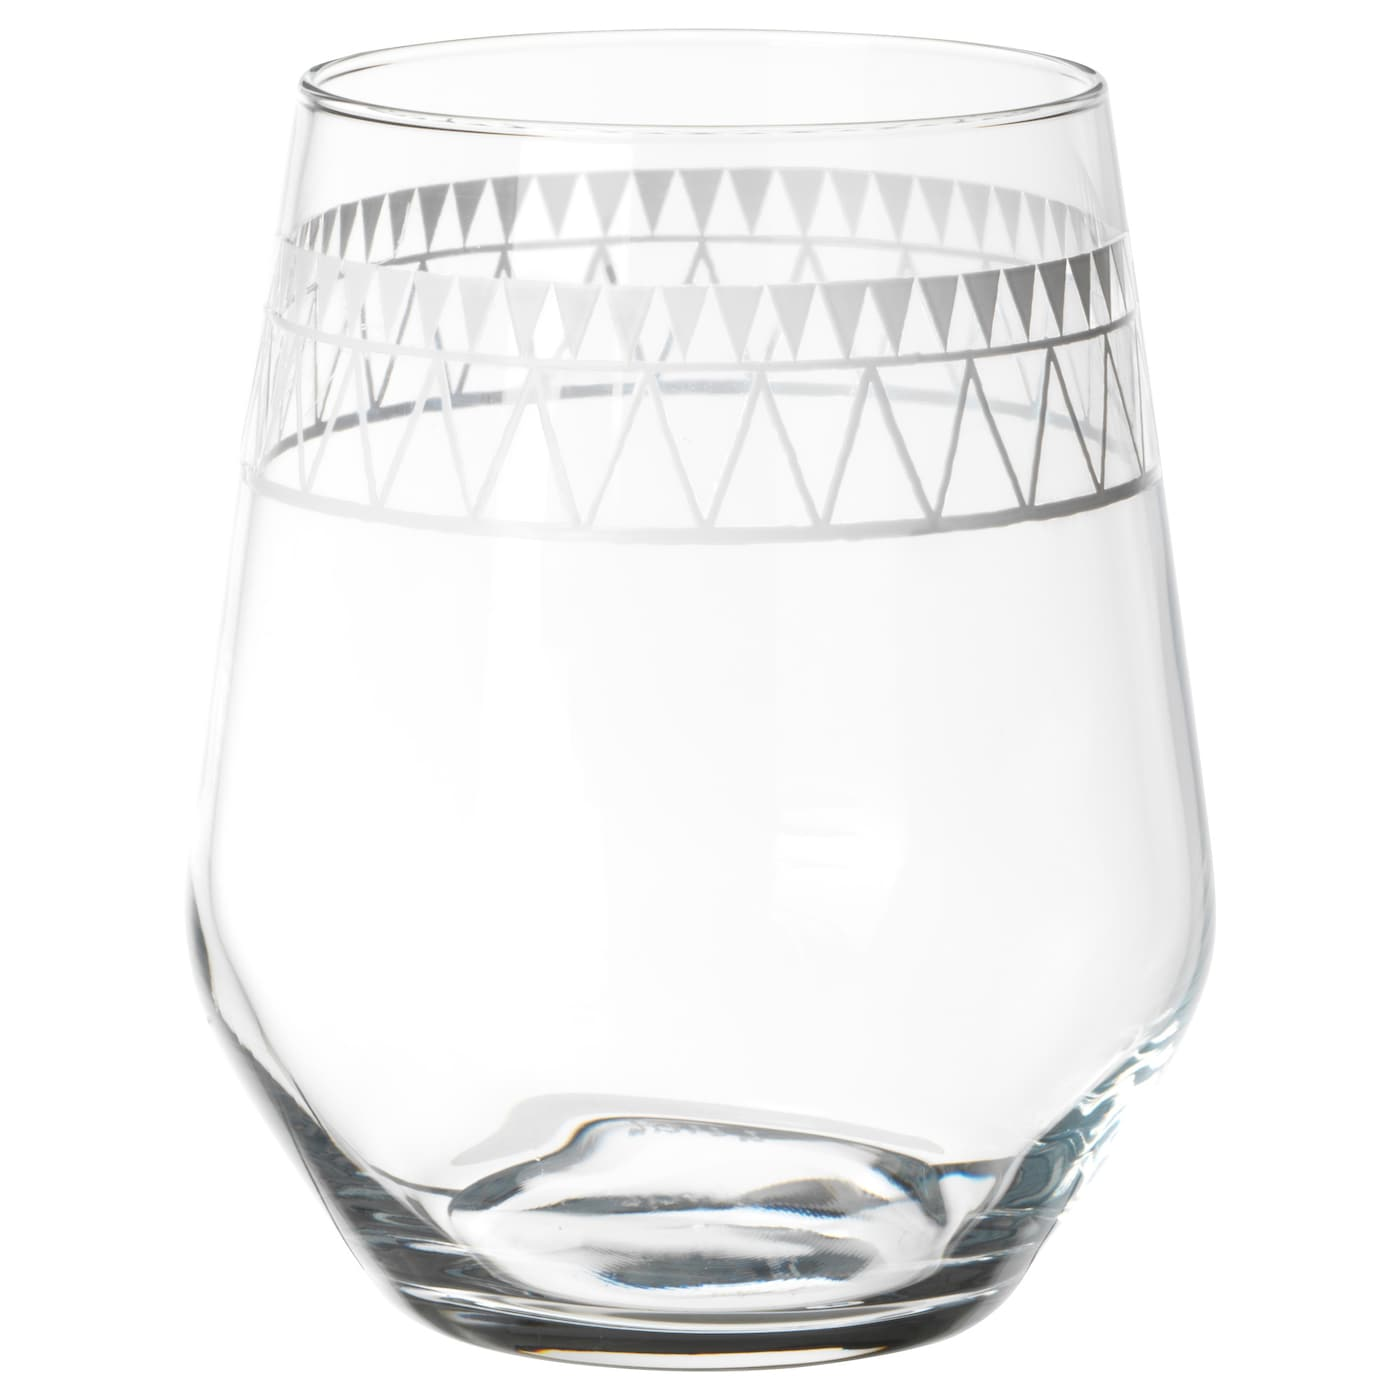 IKEA VINTER 2017 glass